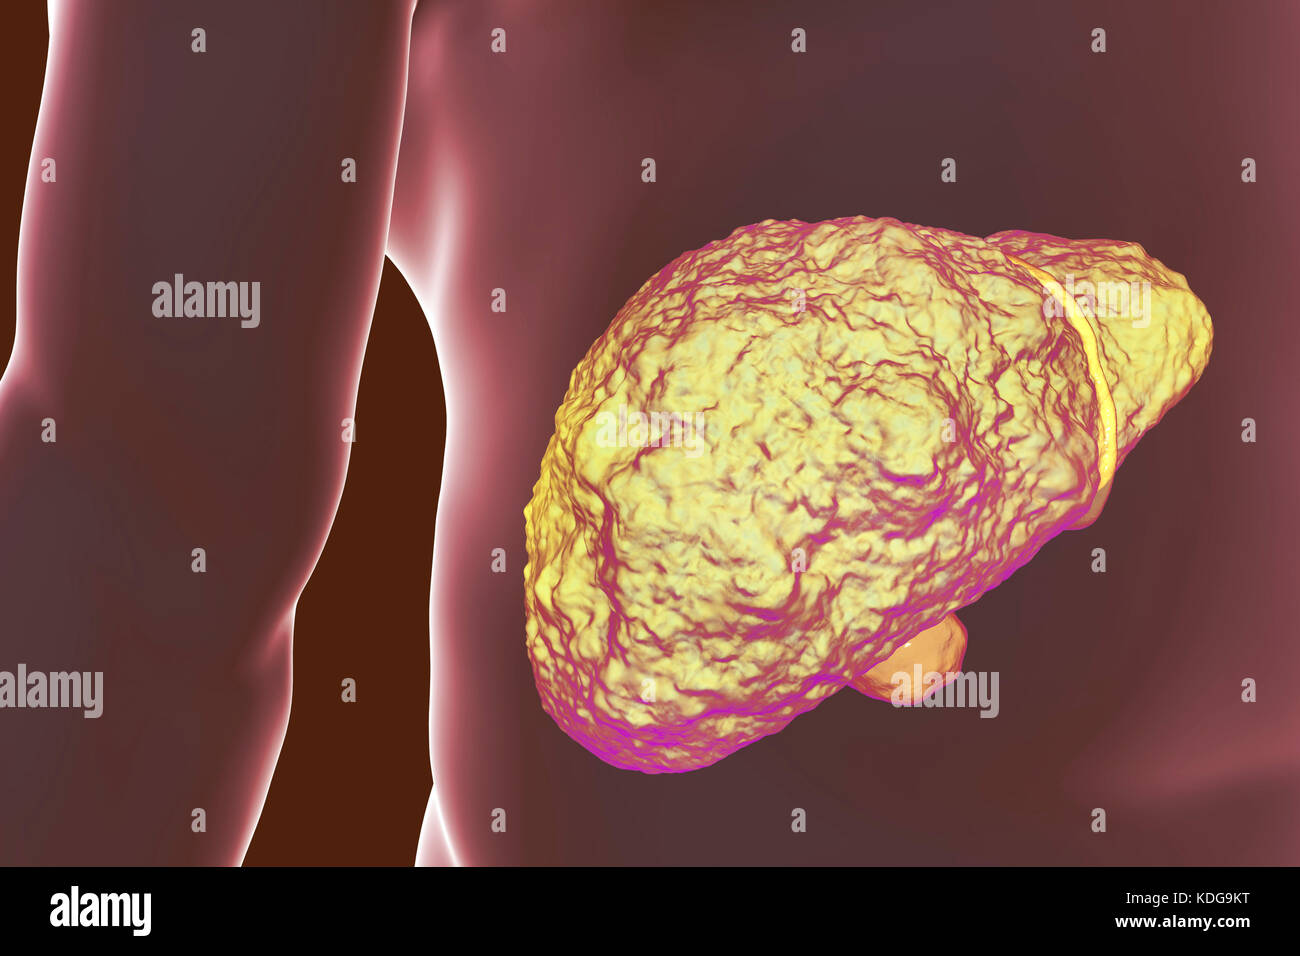 Liver with cirrhosis, computer illustration. Cirrhosis is a consequence of chronic liver disease characterized by Stock Photo